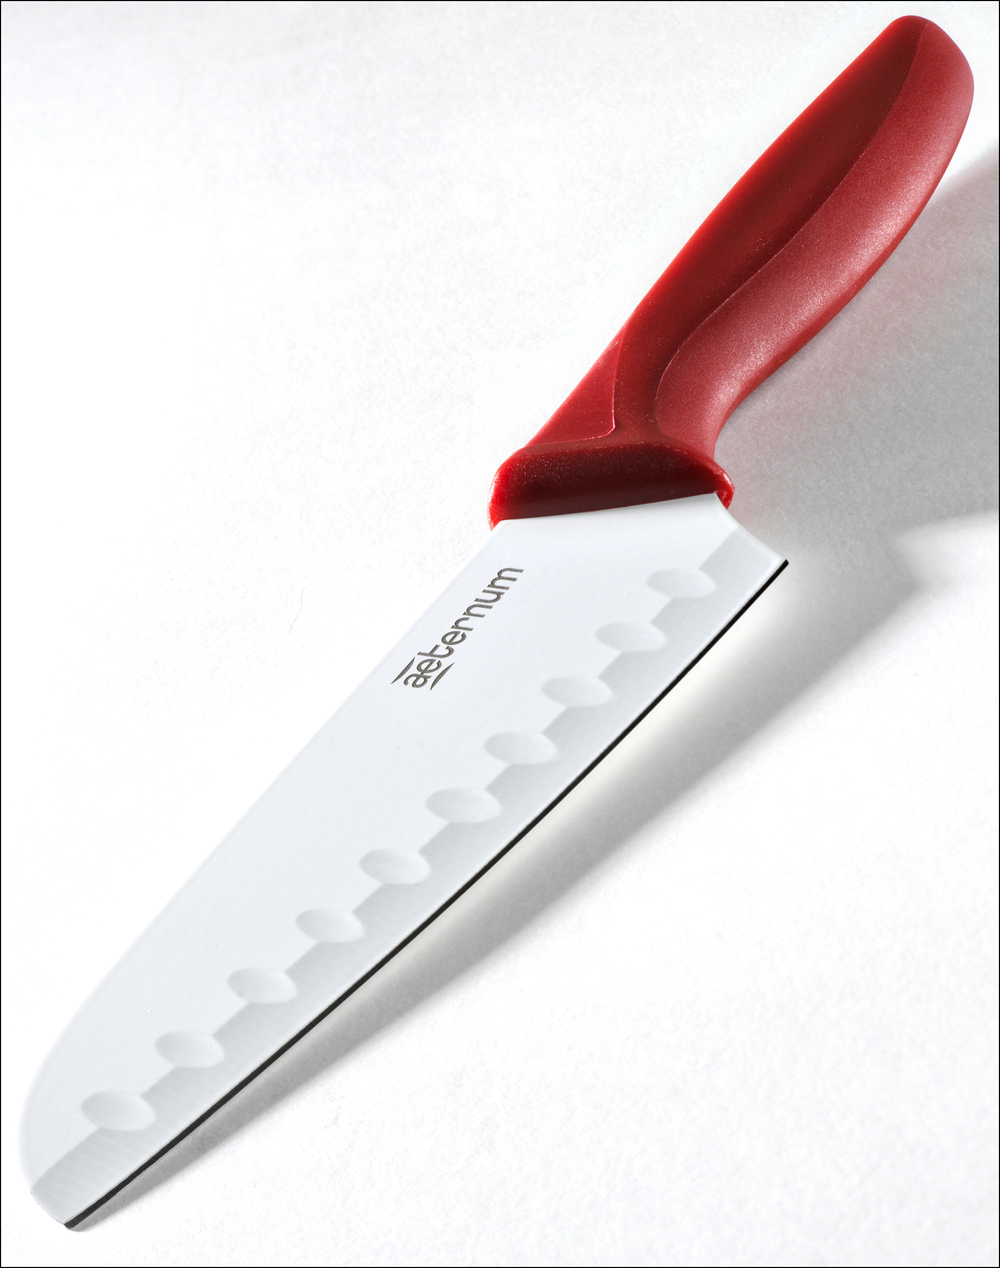 Ryan Beck 07087 Bialetti Santoku Knife Beauty 1.jpg